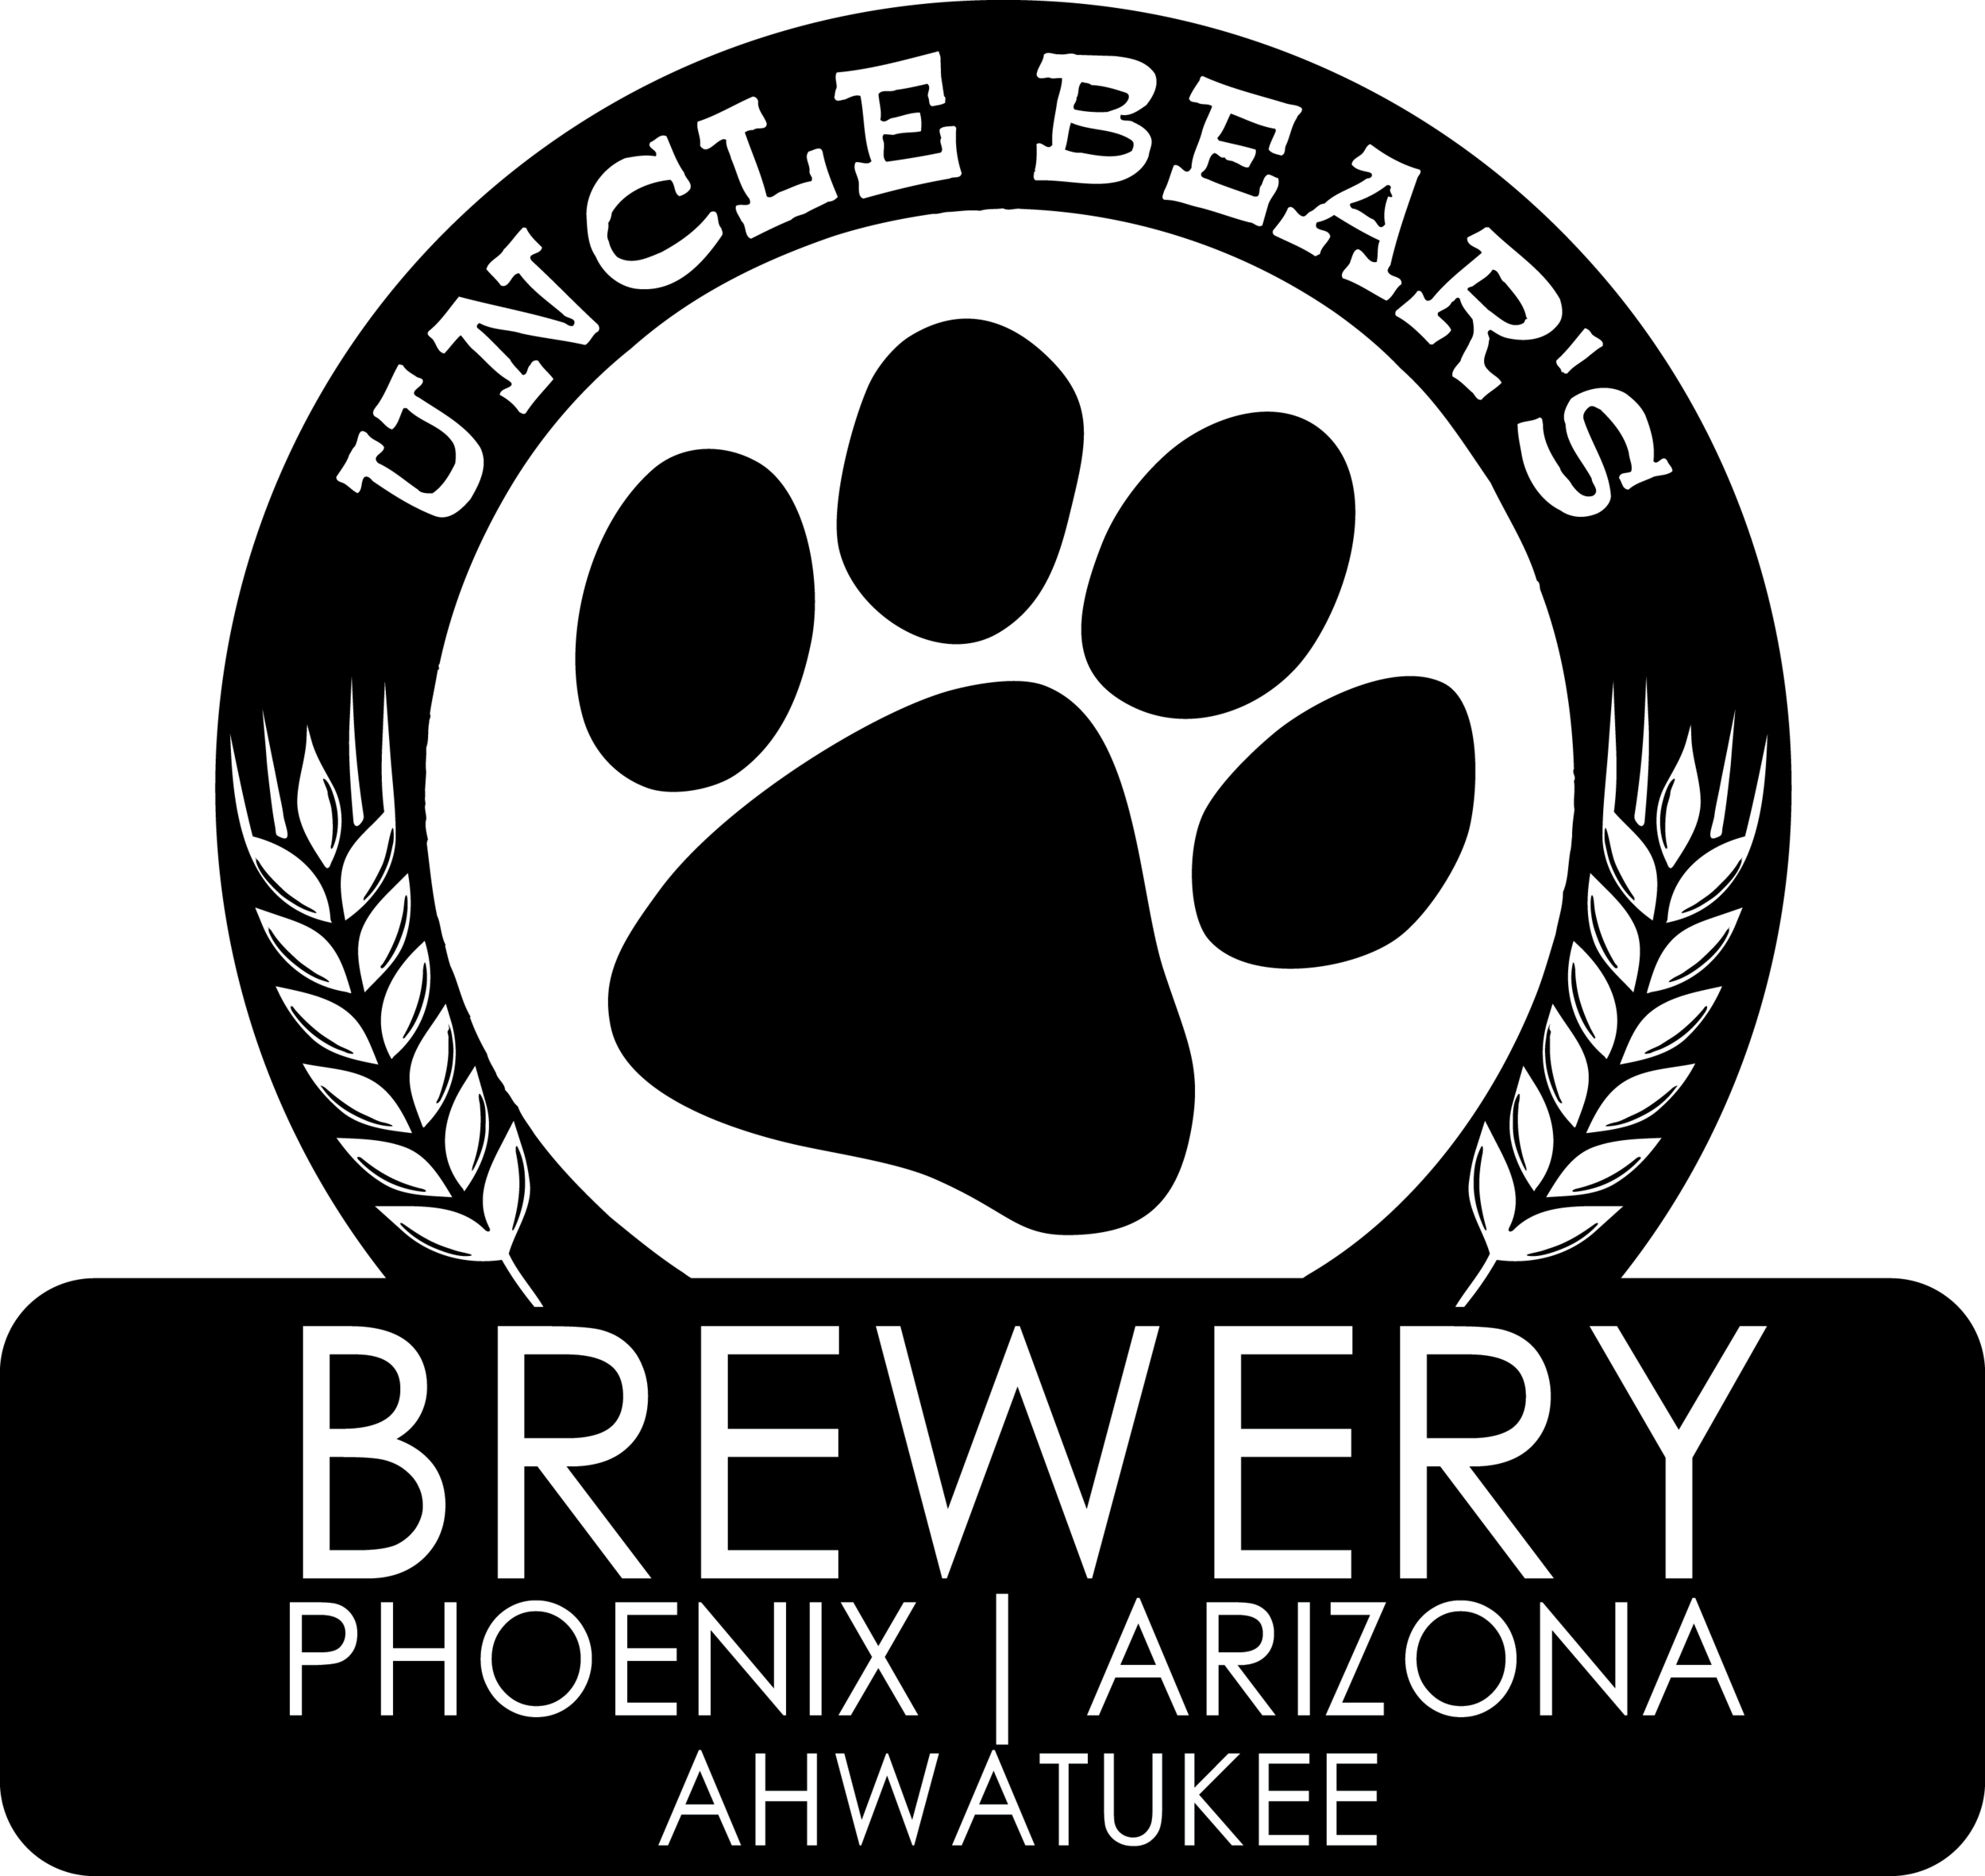 BREWERY LOGO_2.png